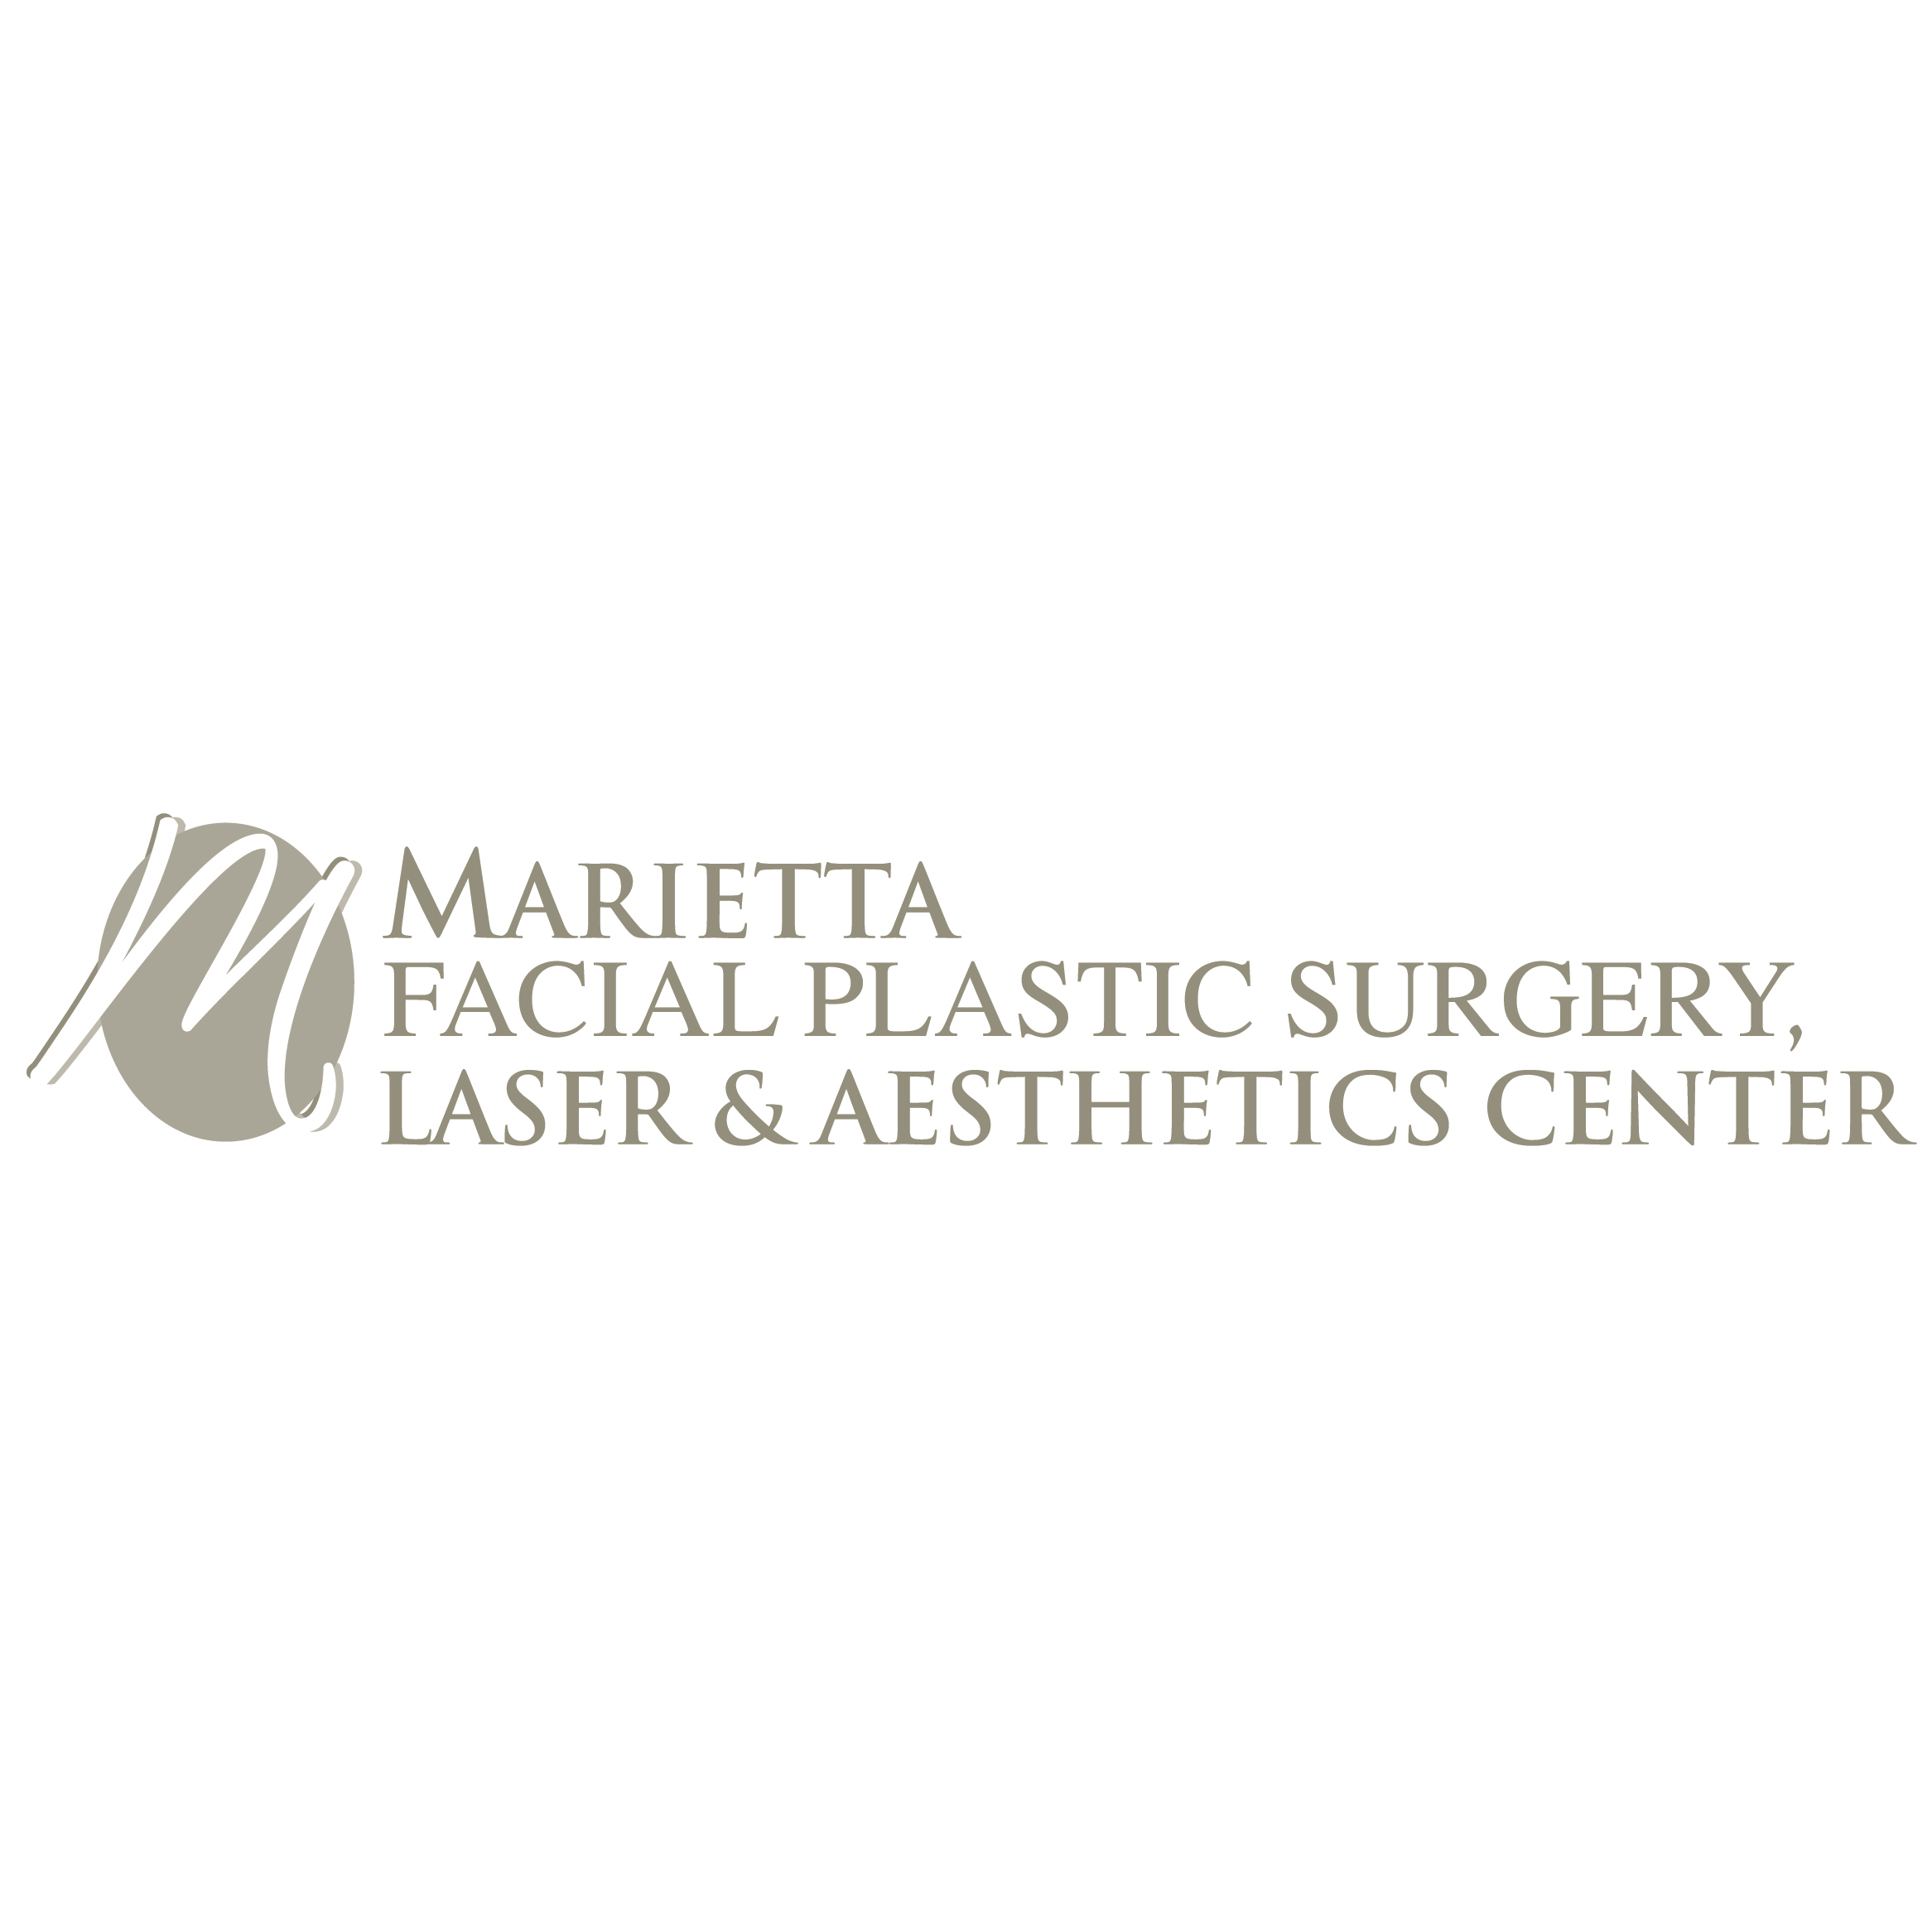 Marietta Facial Plastic Surgery, Laser & Aesthetics Center